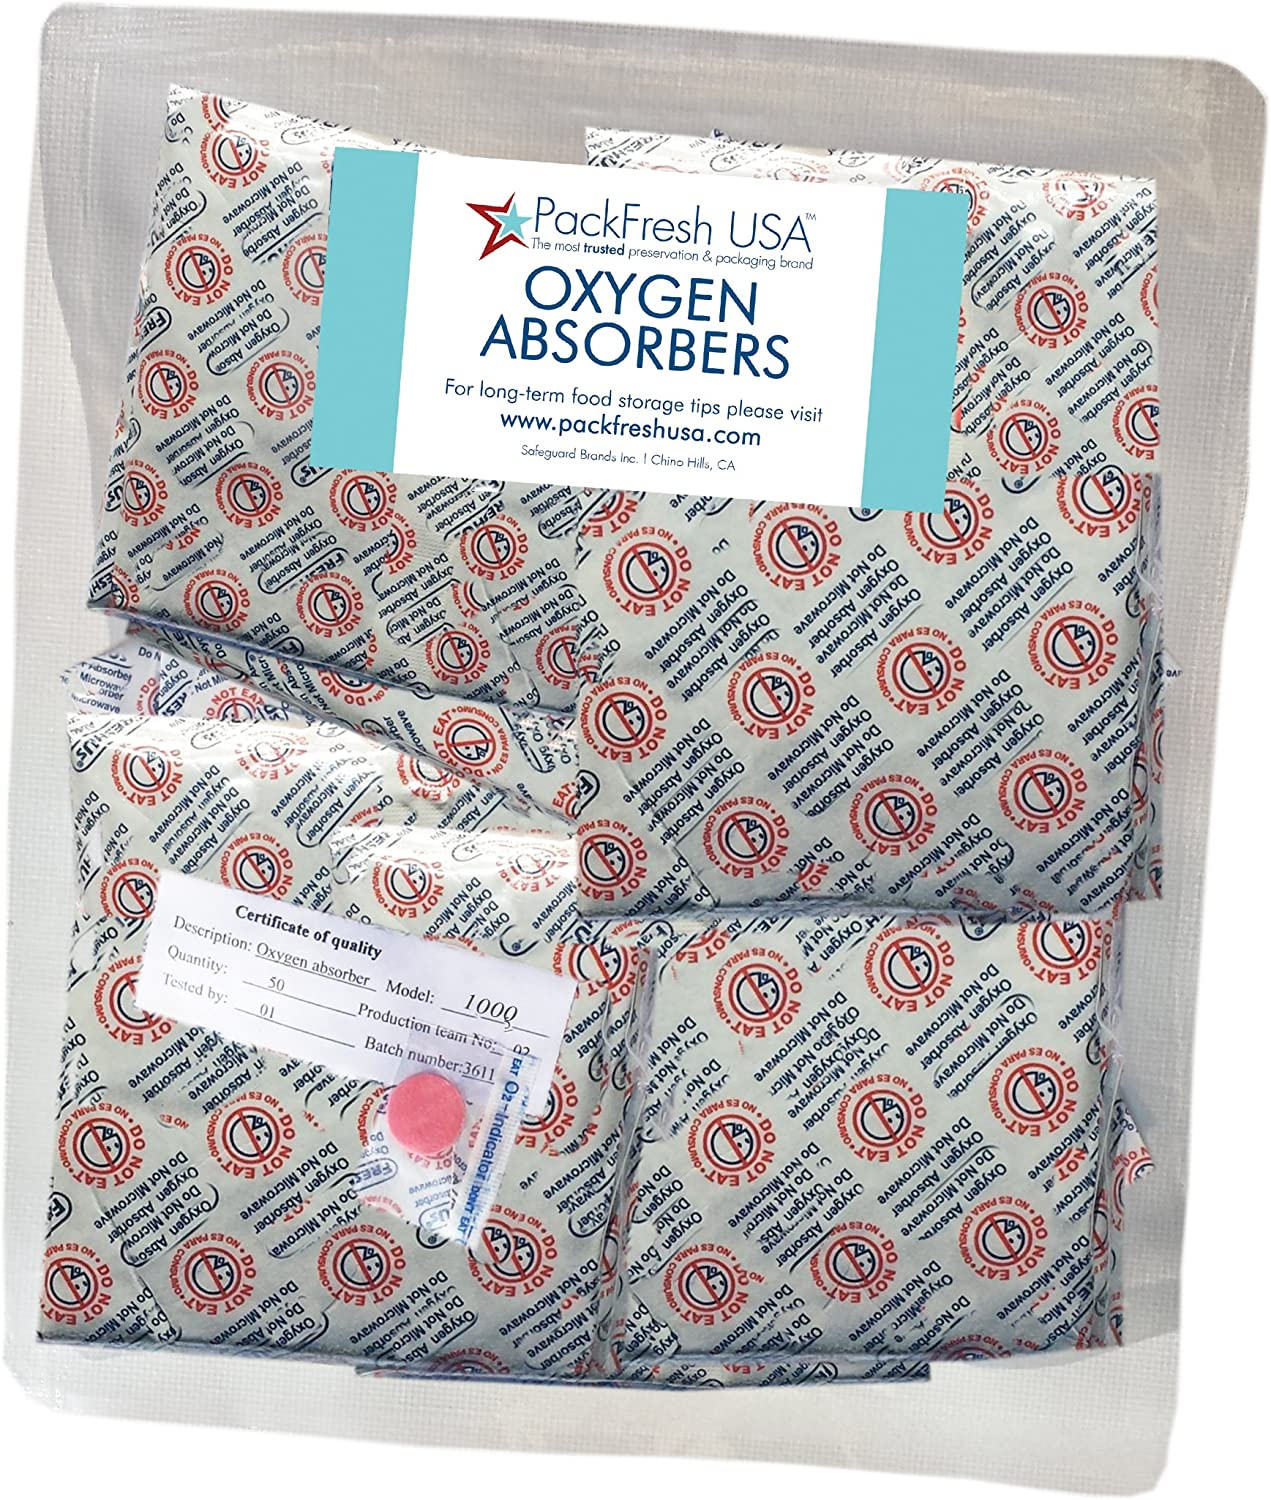 1000cc Oxygen Absorbers for Long Term Food Storage - 50 with PackFreshUSA LTFS Guide